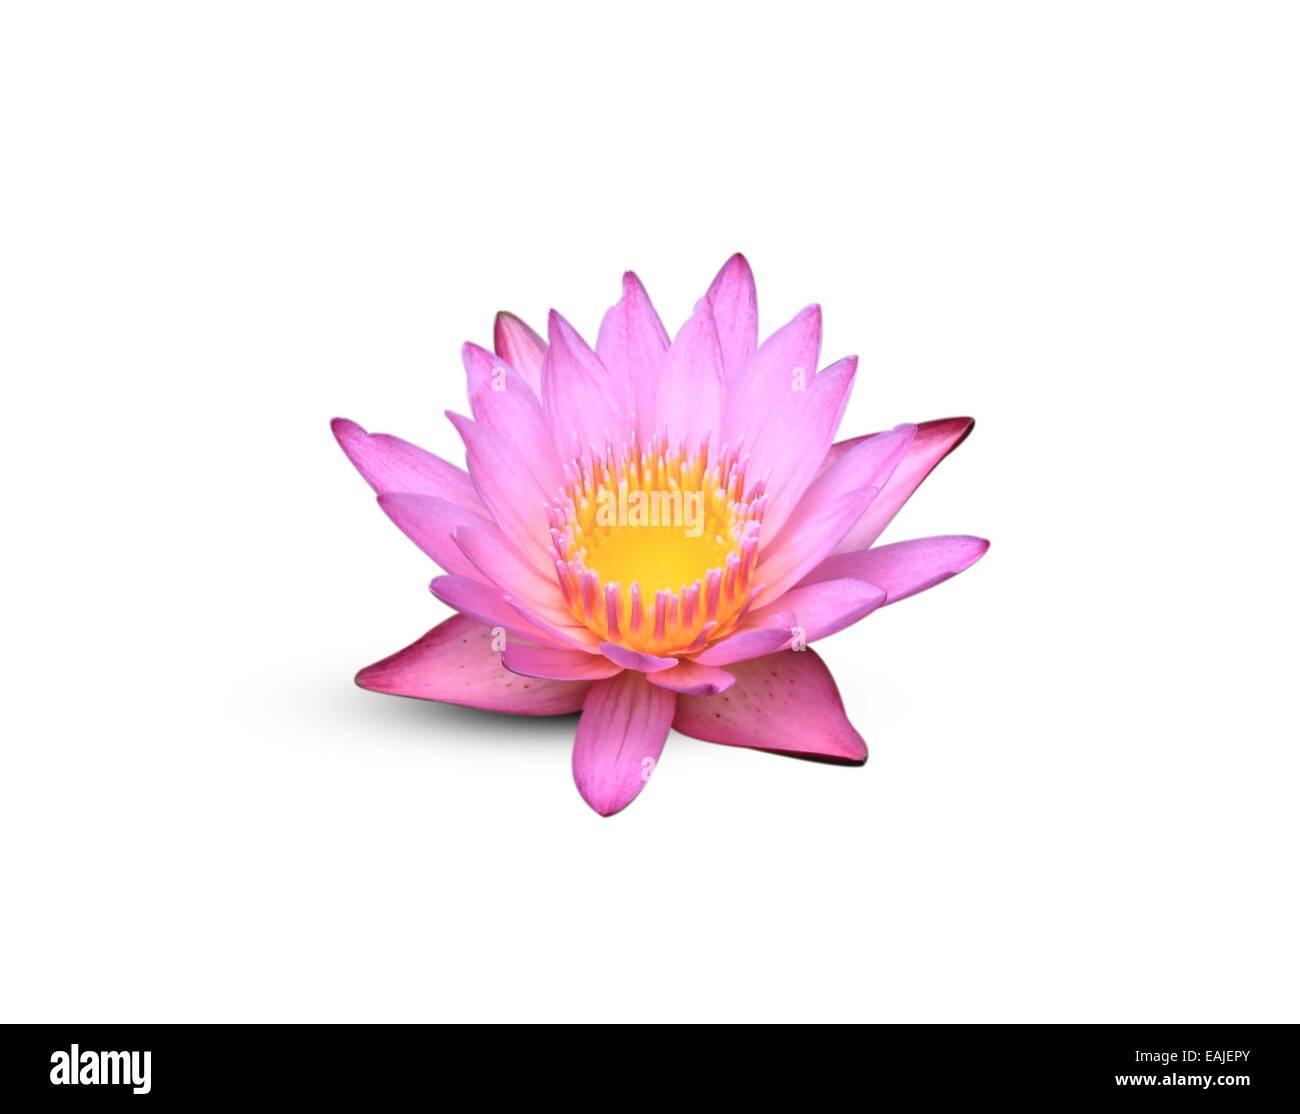 Lotus flower blossom isolated on white background stock photo lotus flower blossom isolated on white background stock photo 75394787 alamy izmirmasajfo